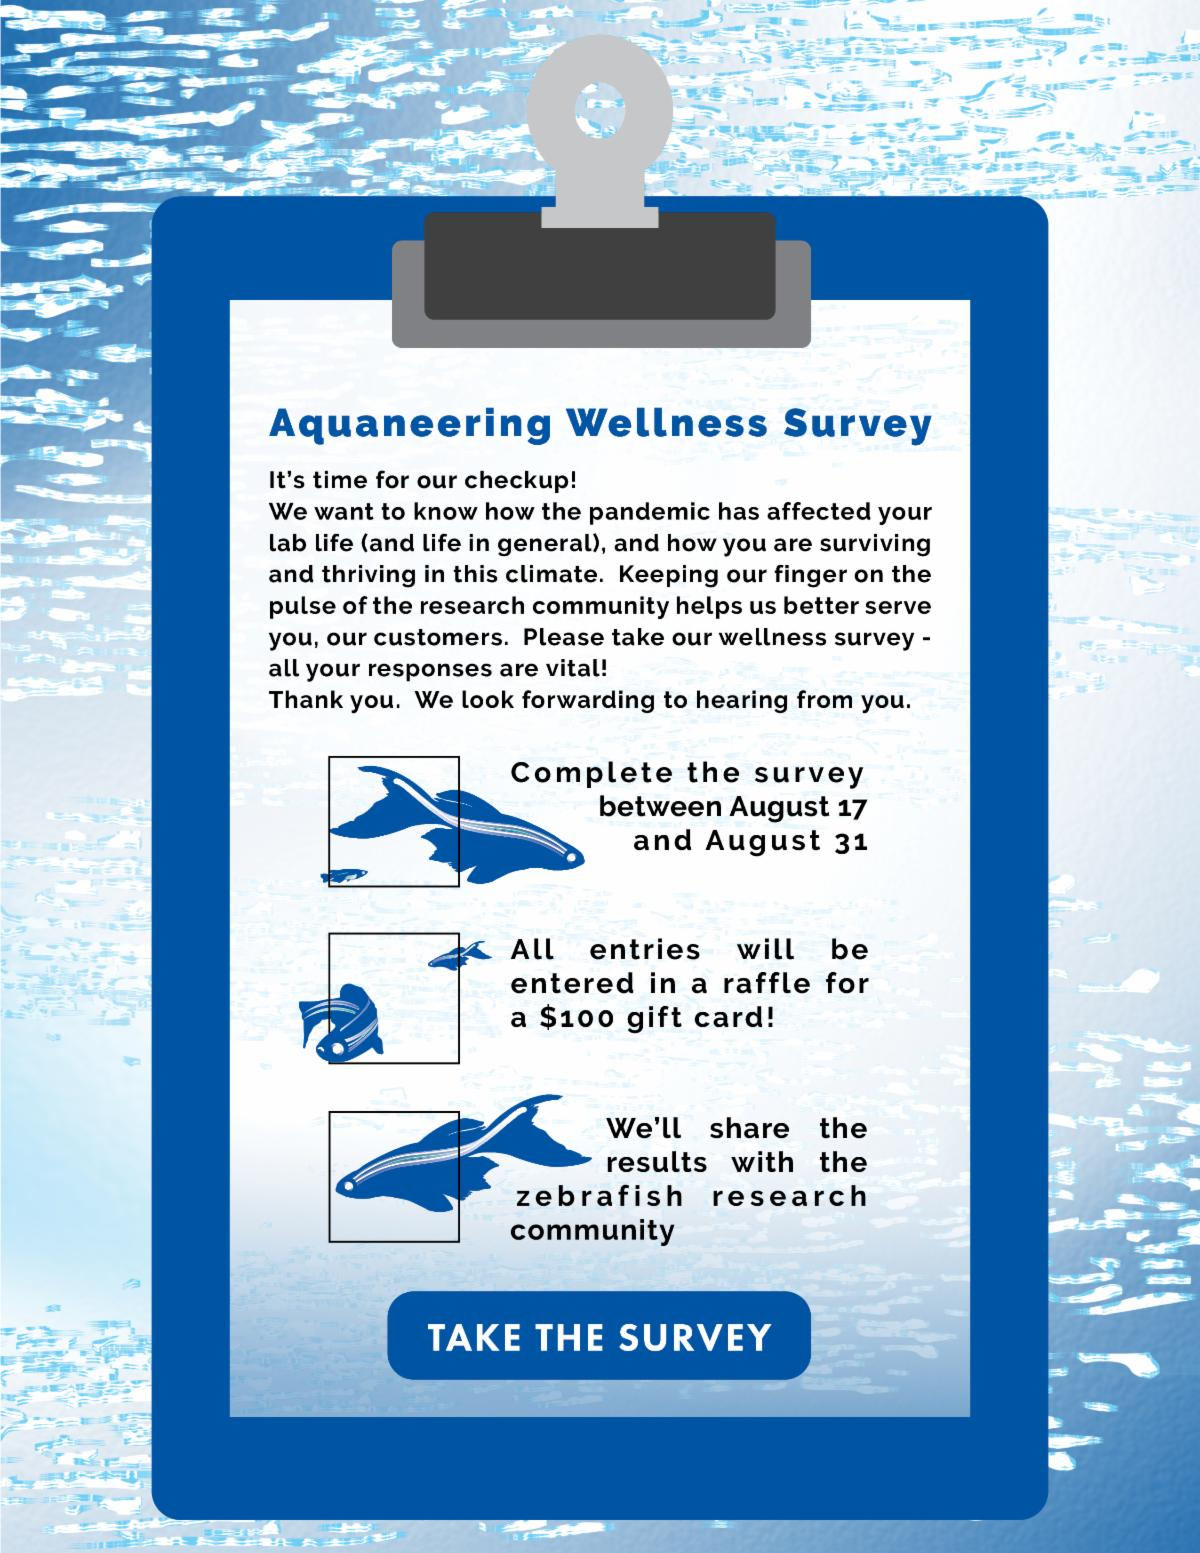 Take the Aquaneering 2020 Wellness Survey